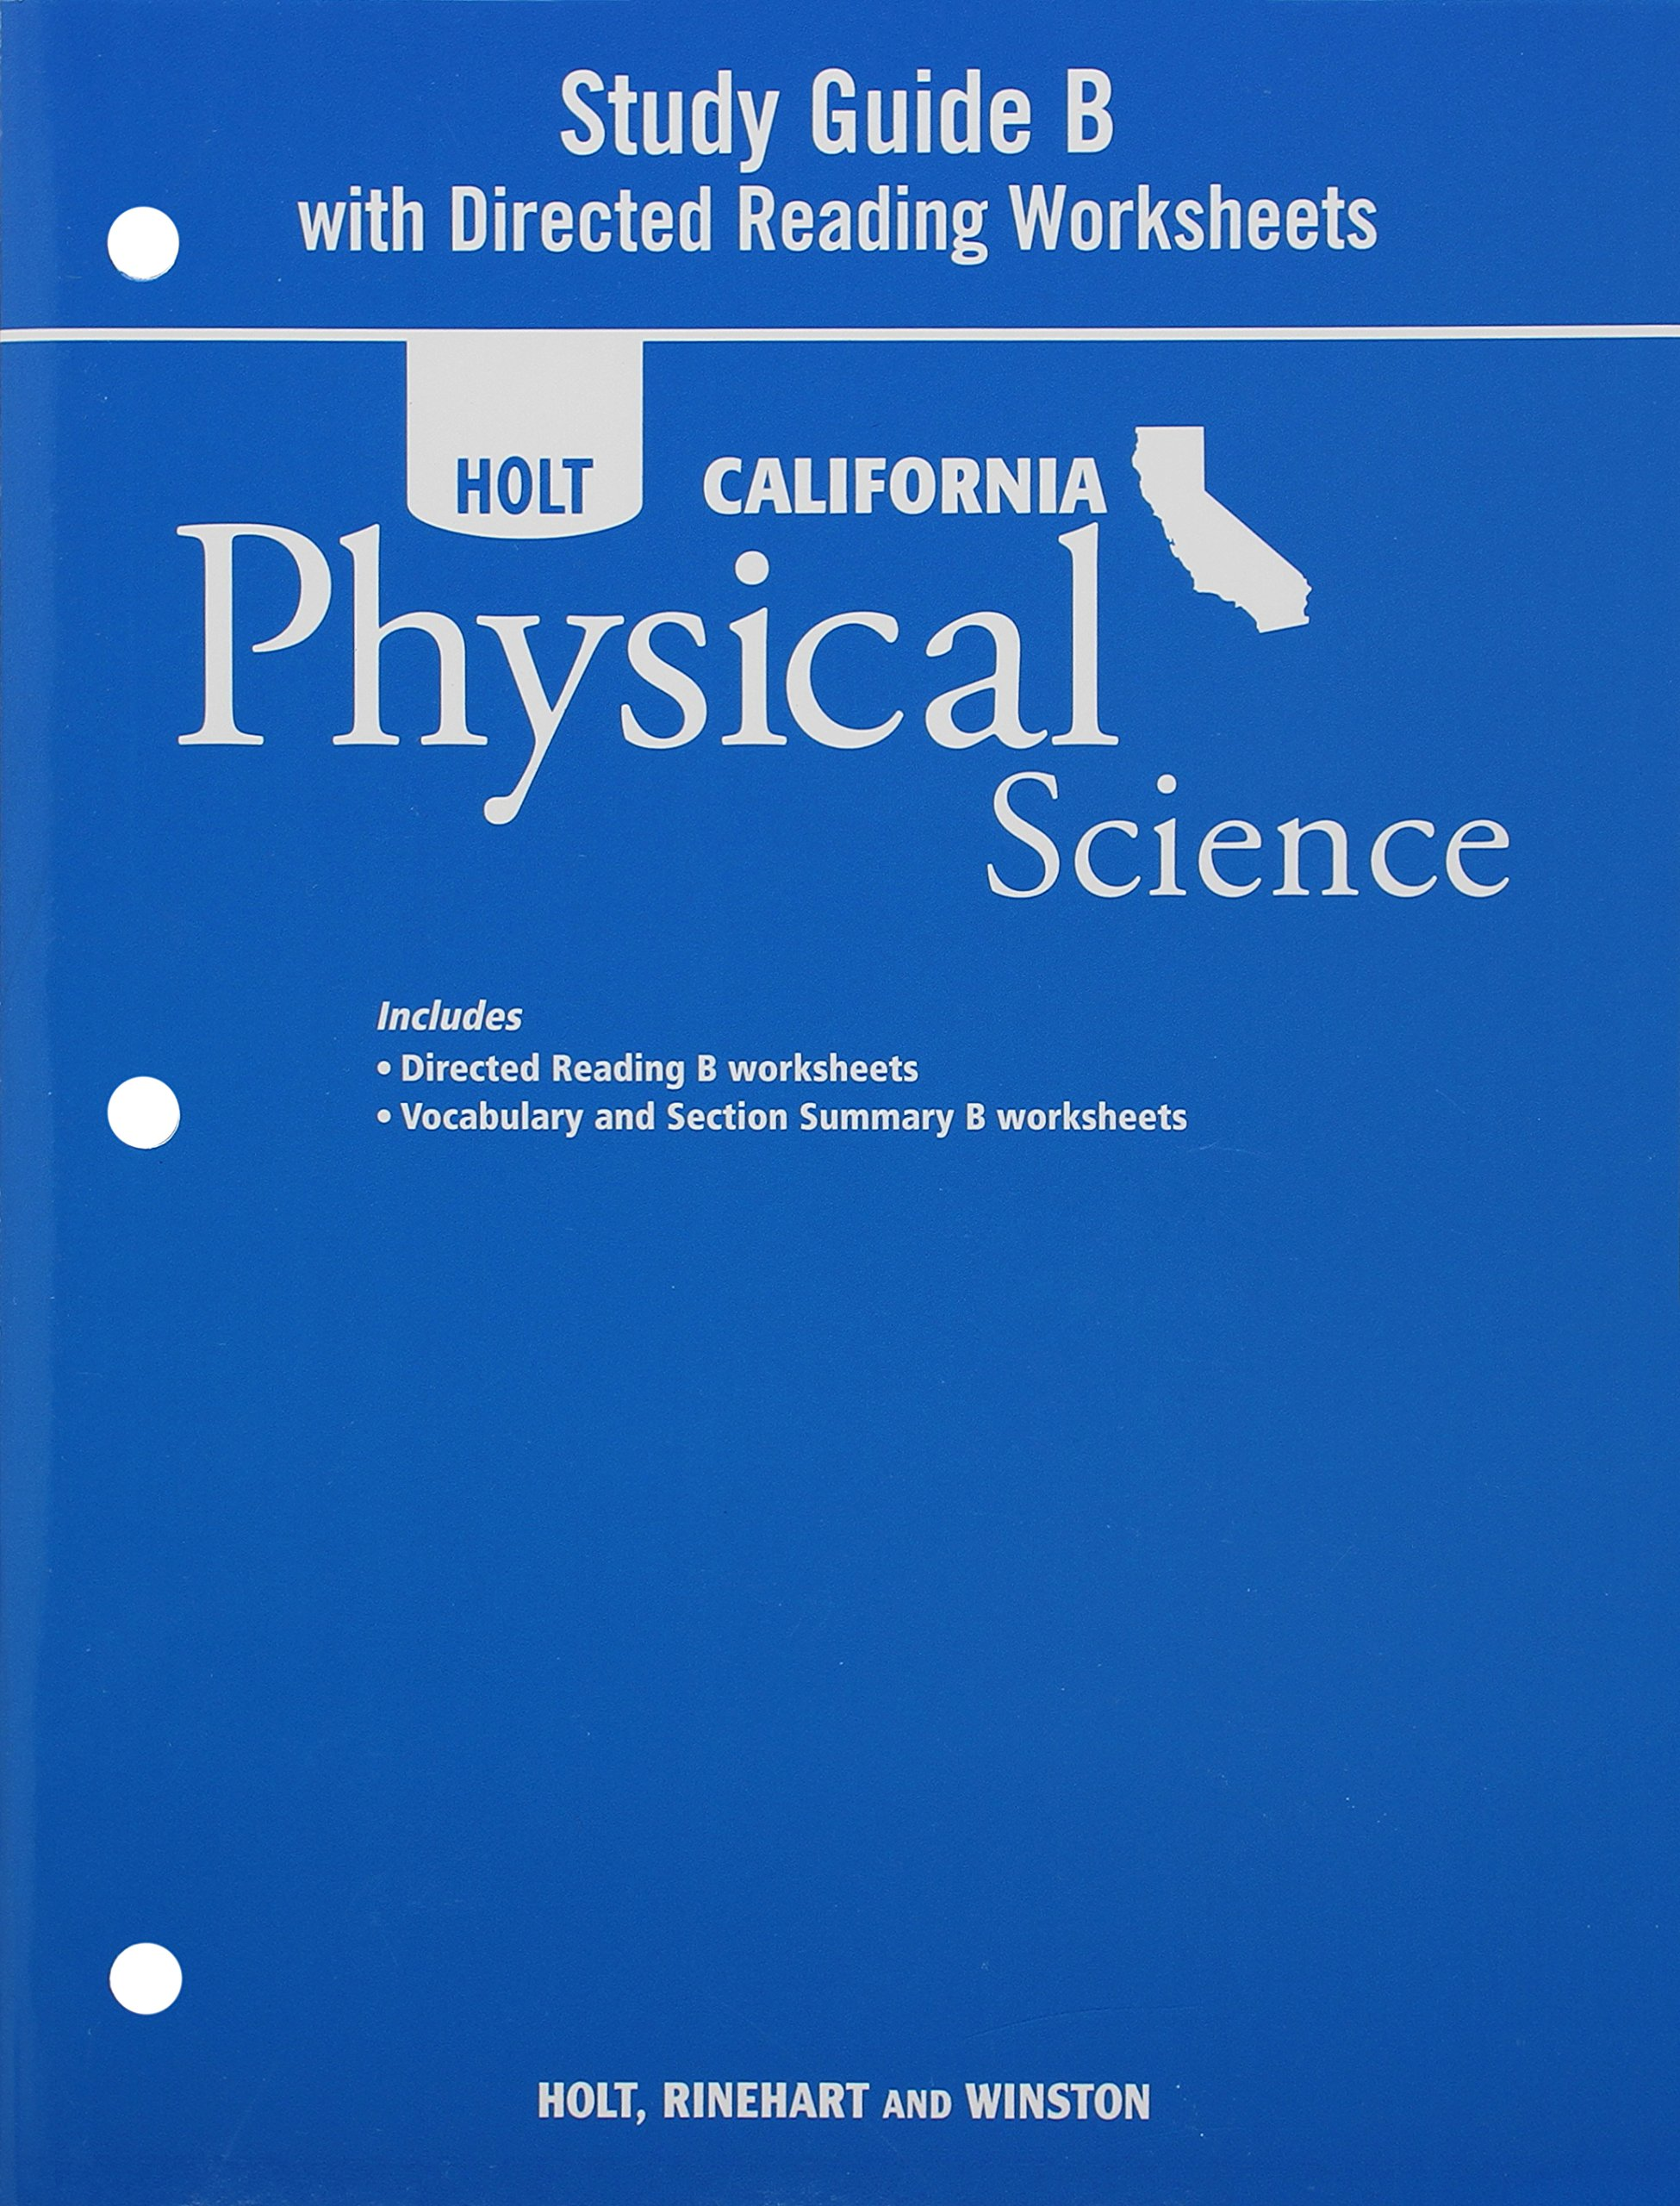 Worksheets Holt Physical Science Worksheets holt science technology california study guide b with directed reading worksheets grade 8 physical rinehart and winst